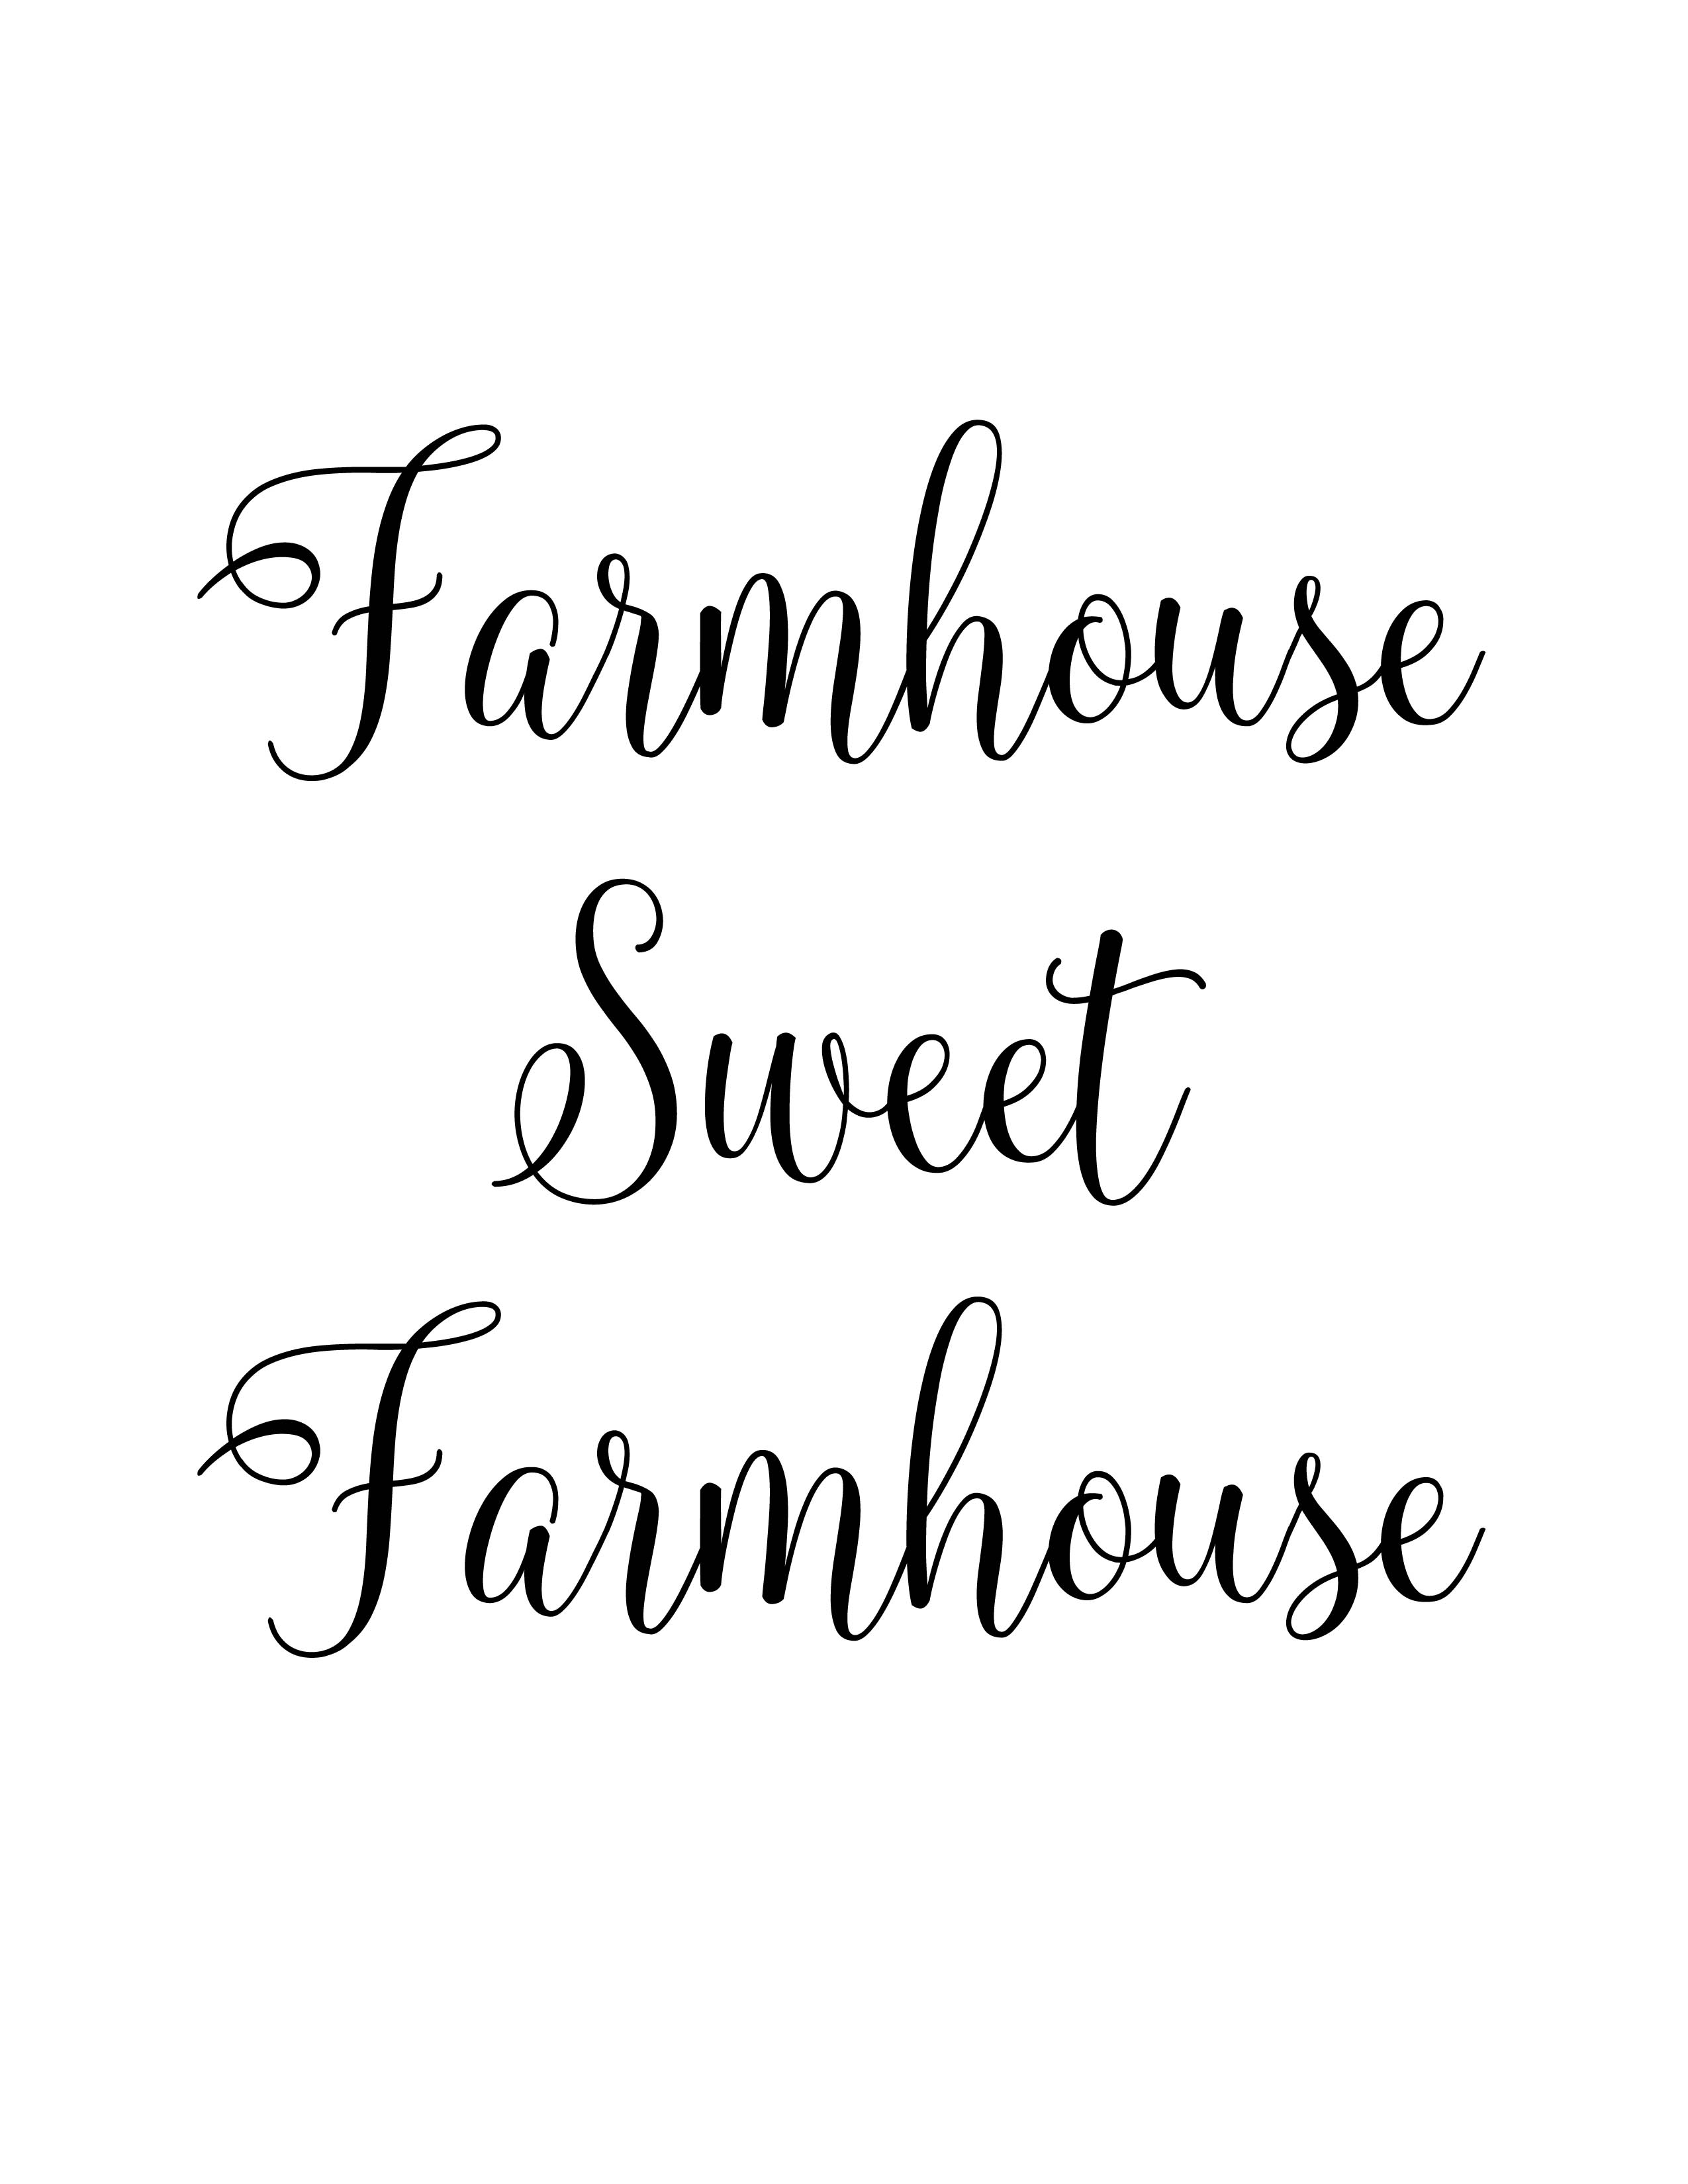 photograph relating to Farmhouse Printable titled Farmhouse Printable - Farmhouse Cute Farmhouse - Hello there